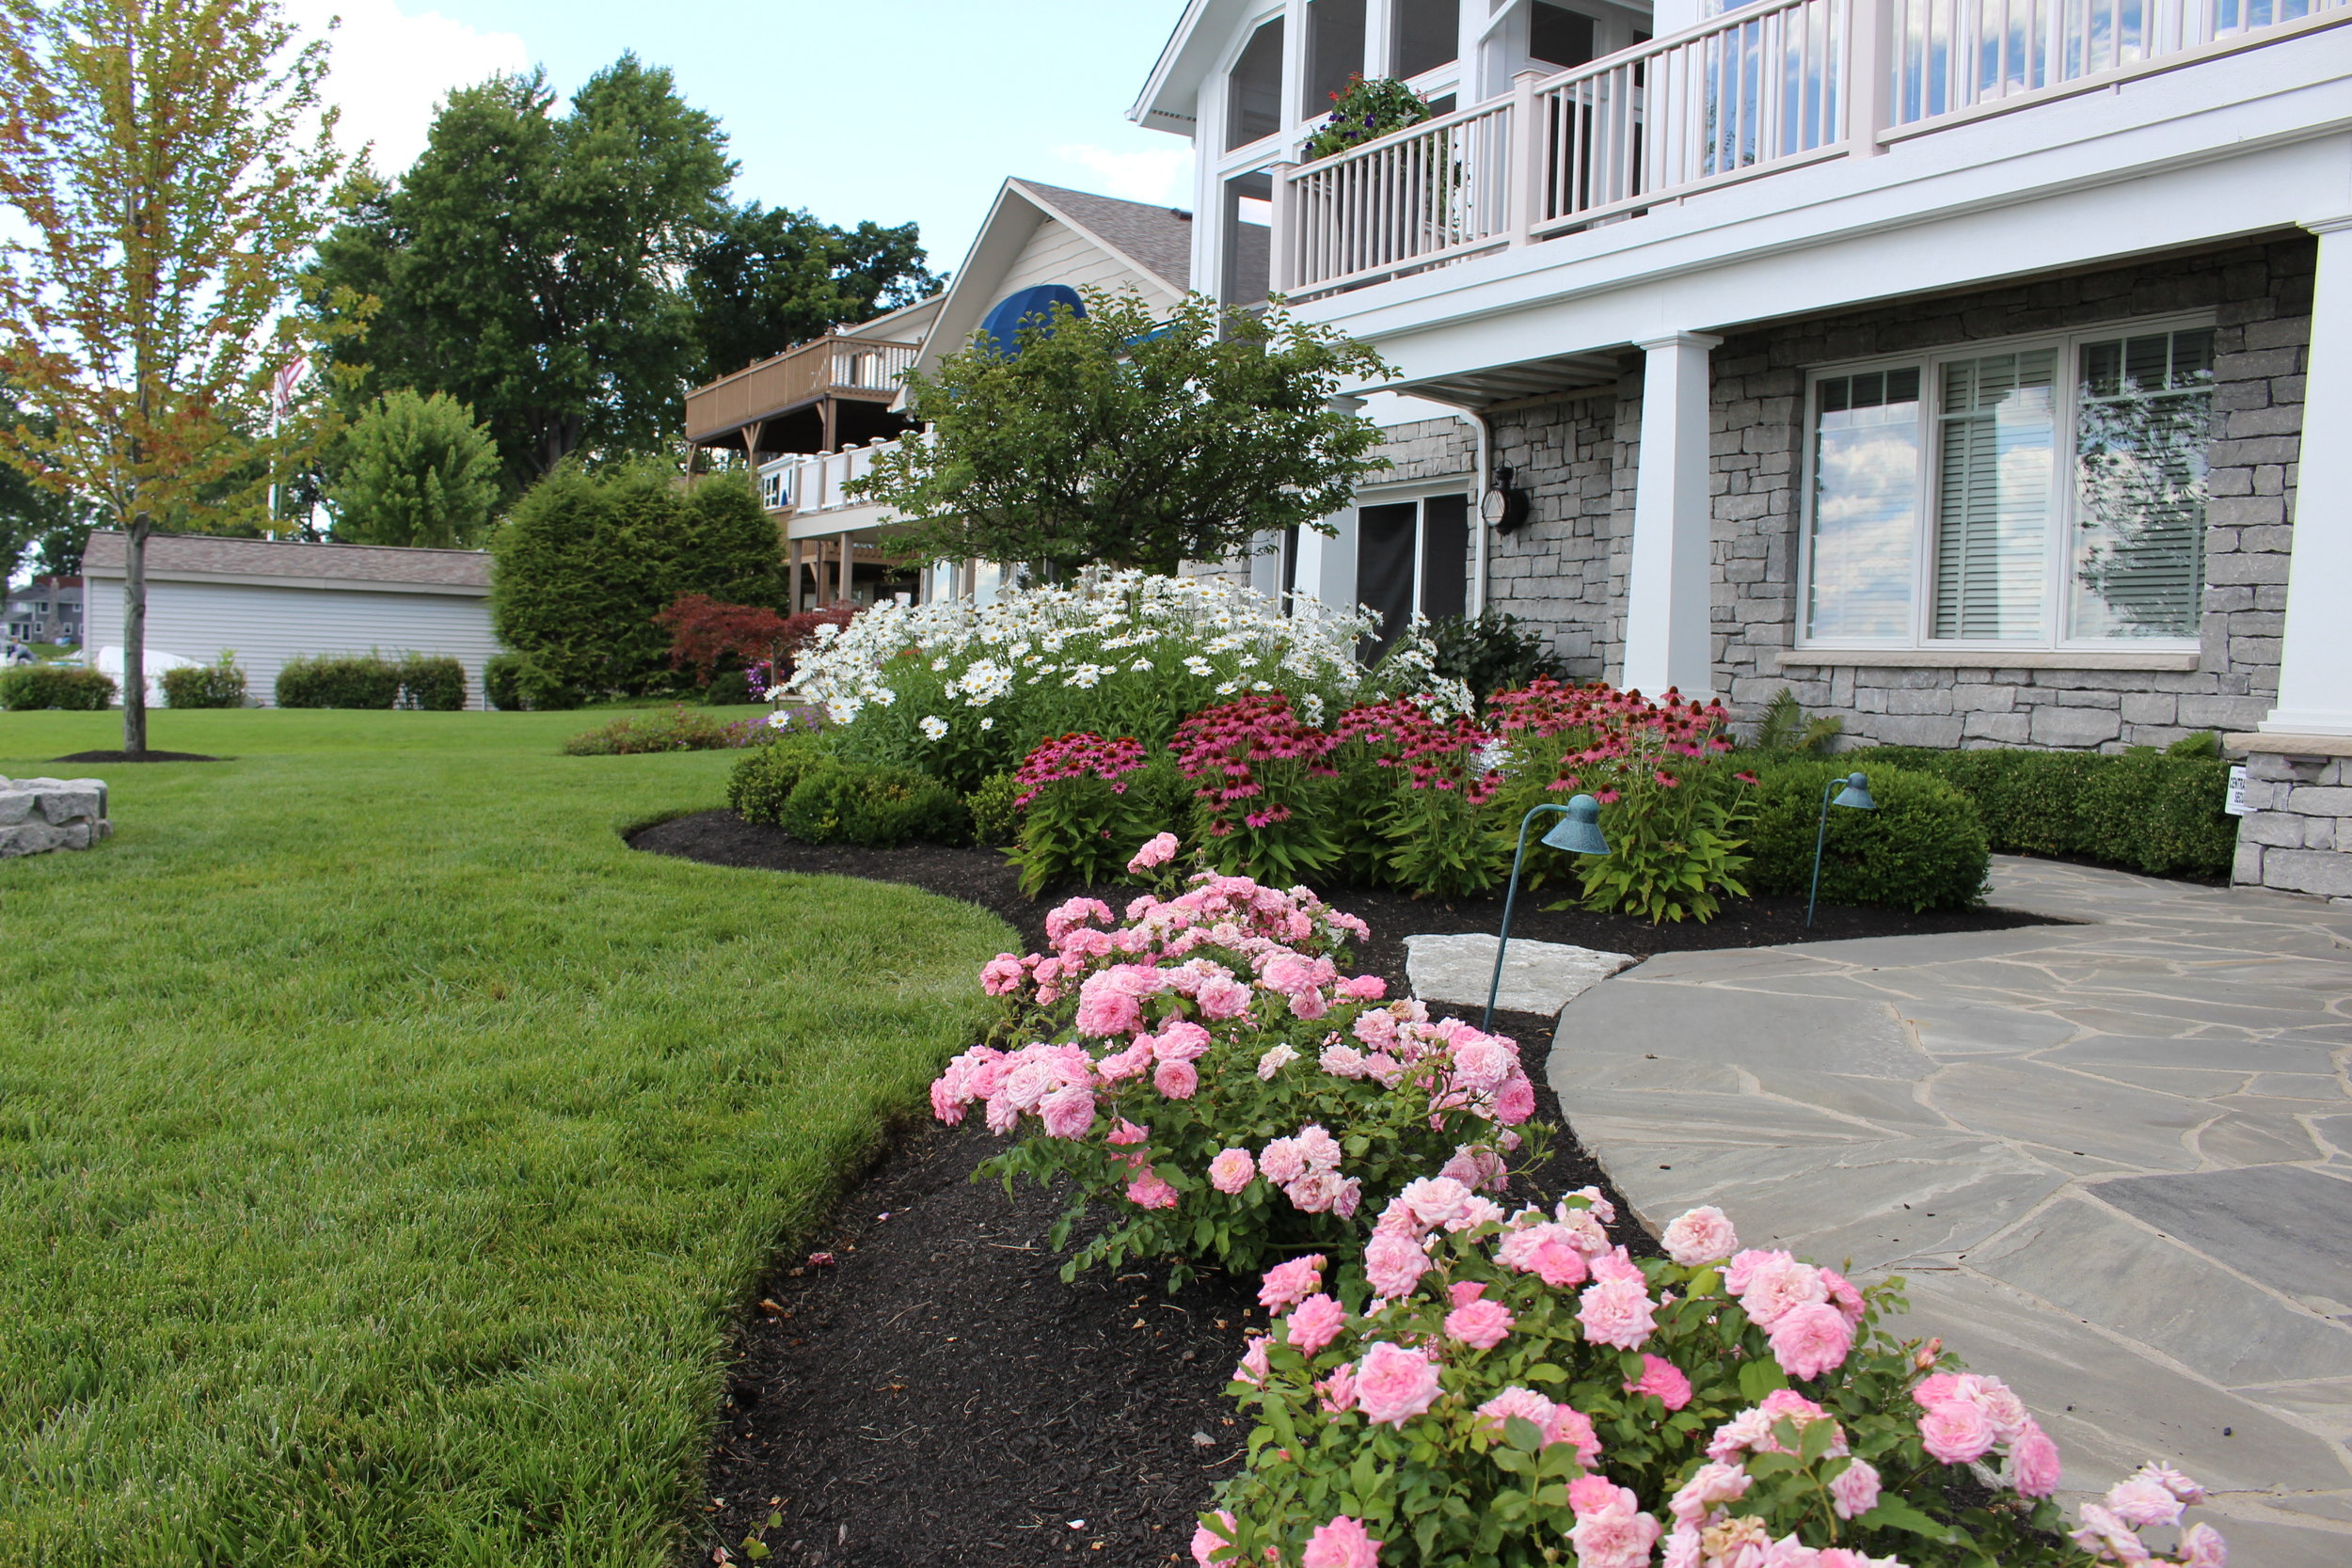 Softscape - Full landscape plantings, accent plantings, large tree installation, new lawn- sod or seed, mulch.